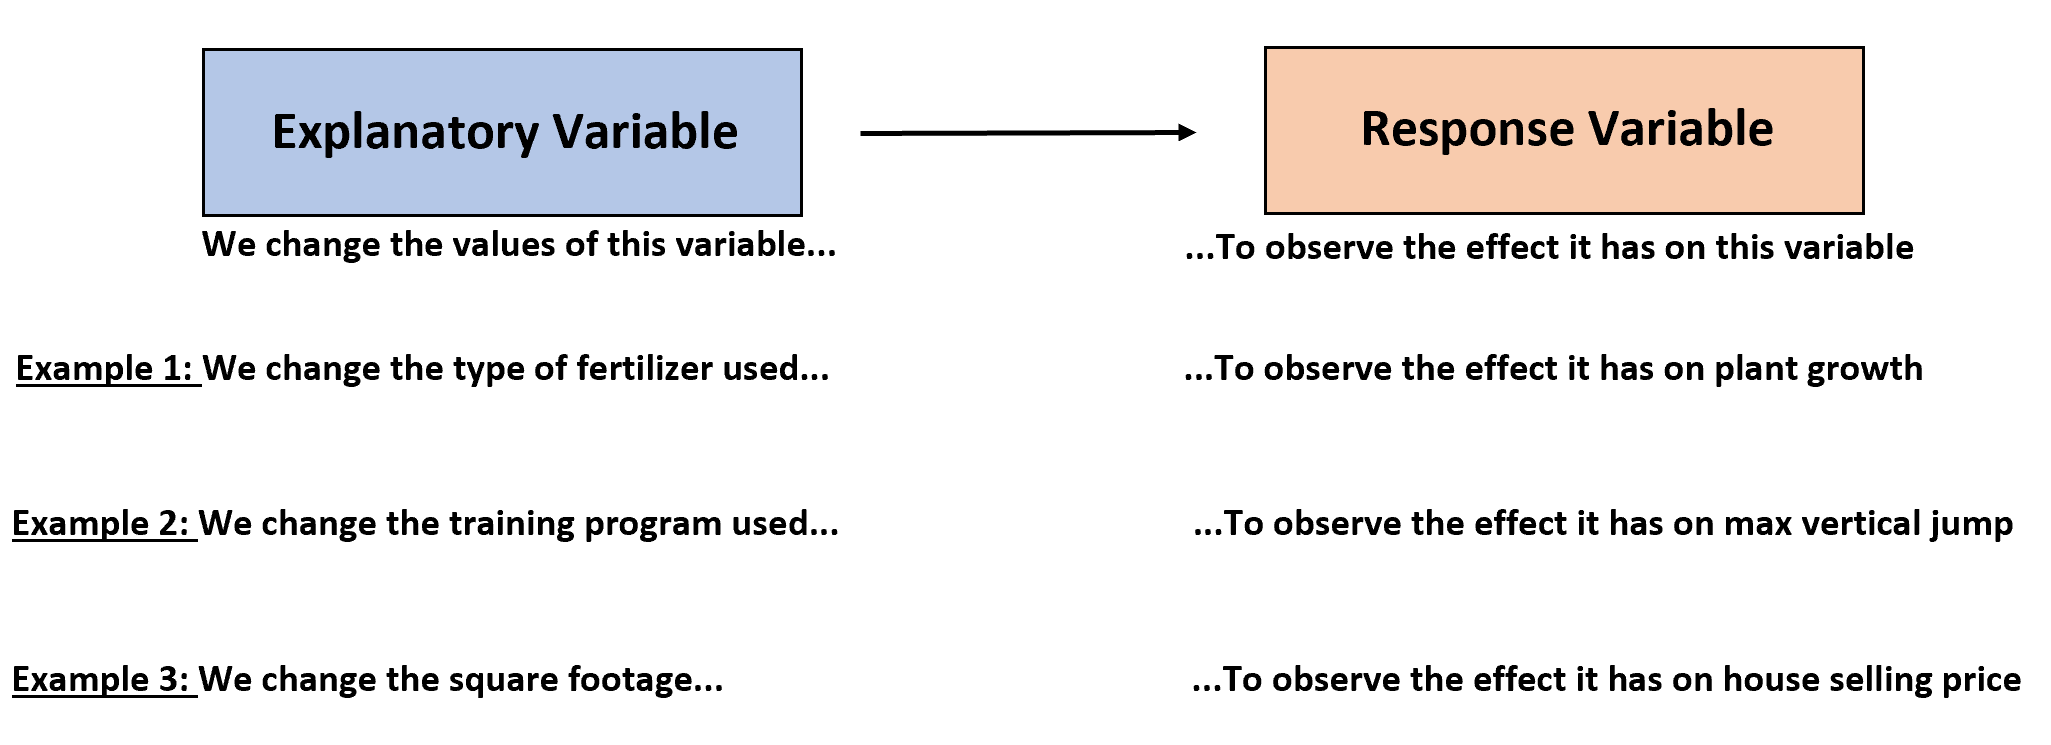 Explanatory and response variable differences